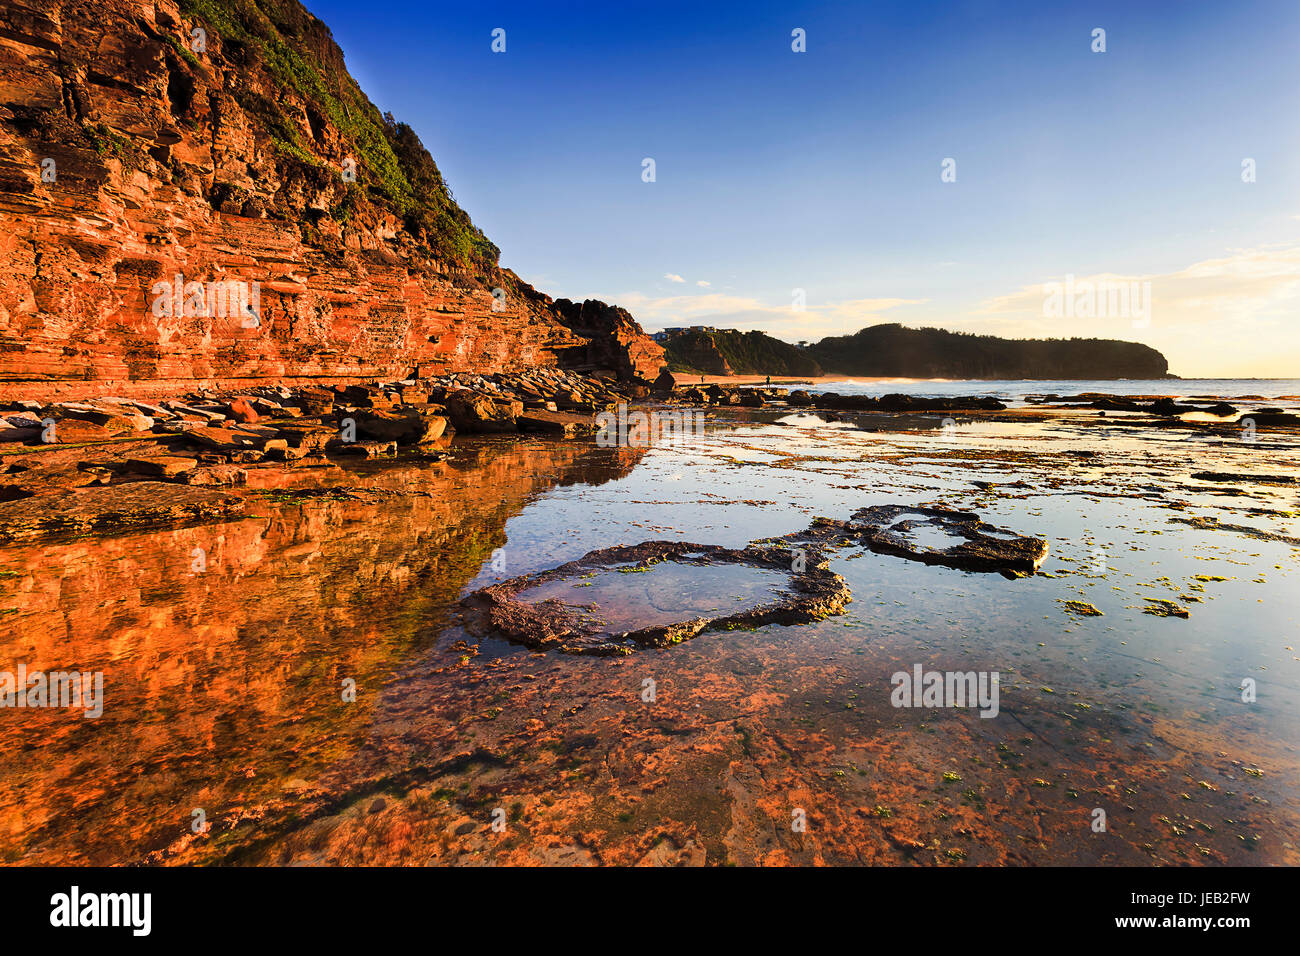 Warm illuminated by rising morning sune the rock cliff headland of Narrabeen beach off Australian pacific coast. - Stock Image